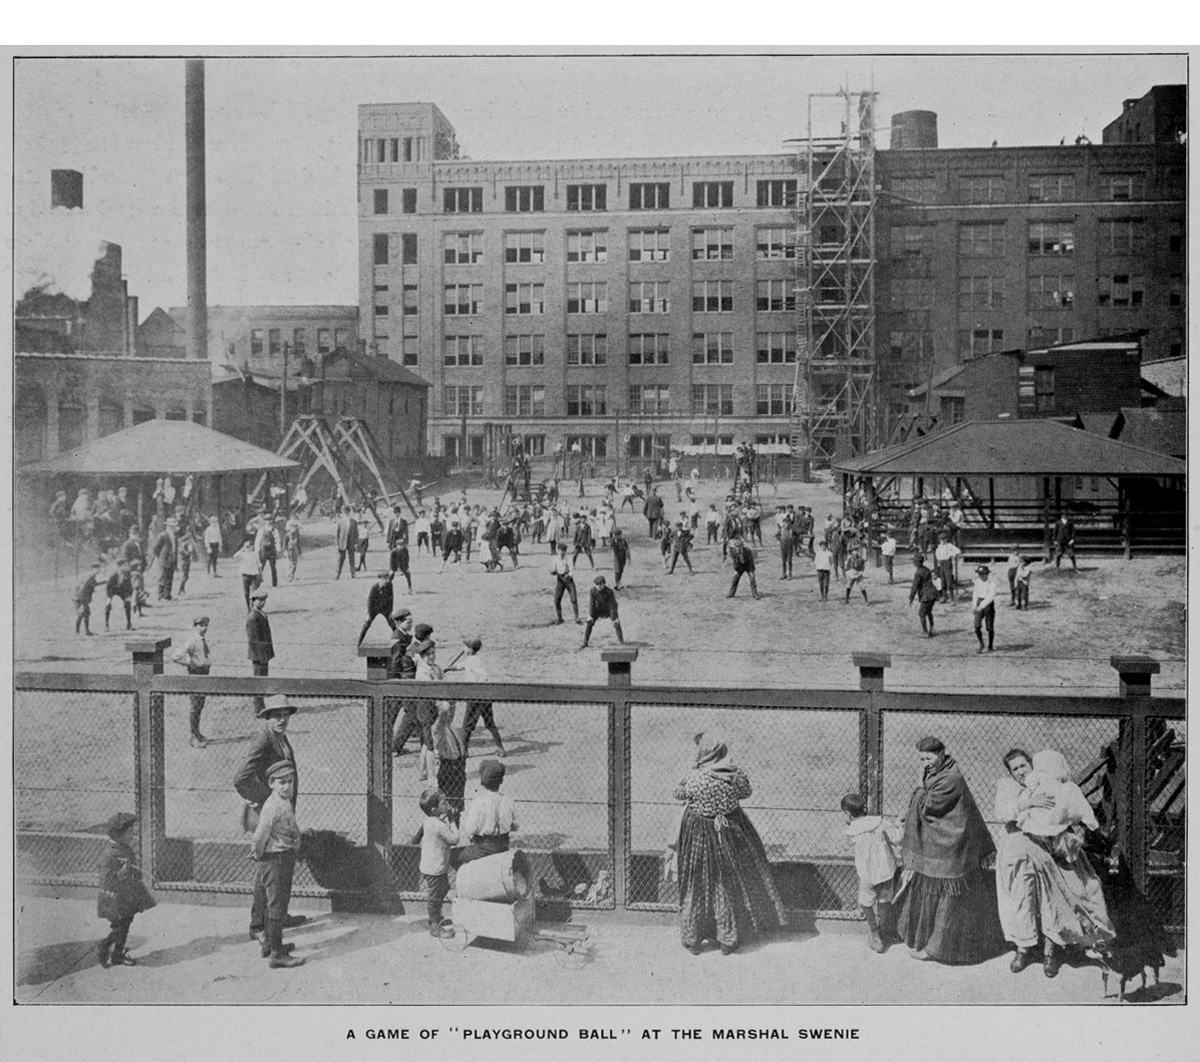 Children play baseball inside a playground with large buildings in the background